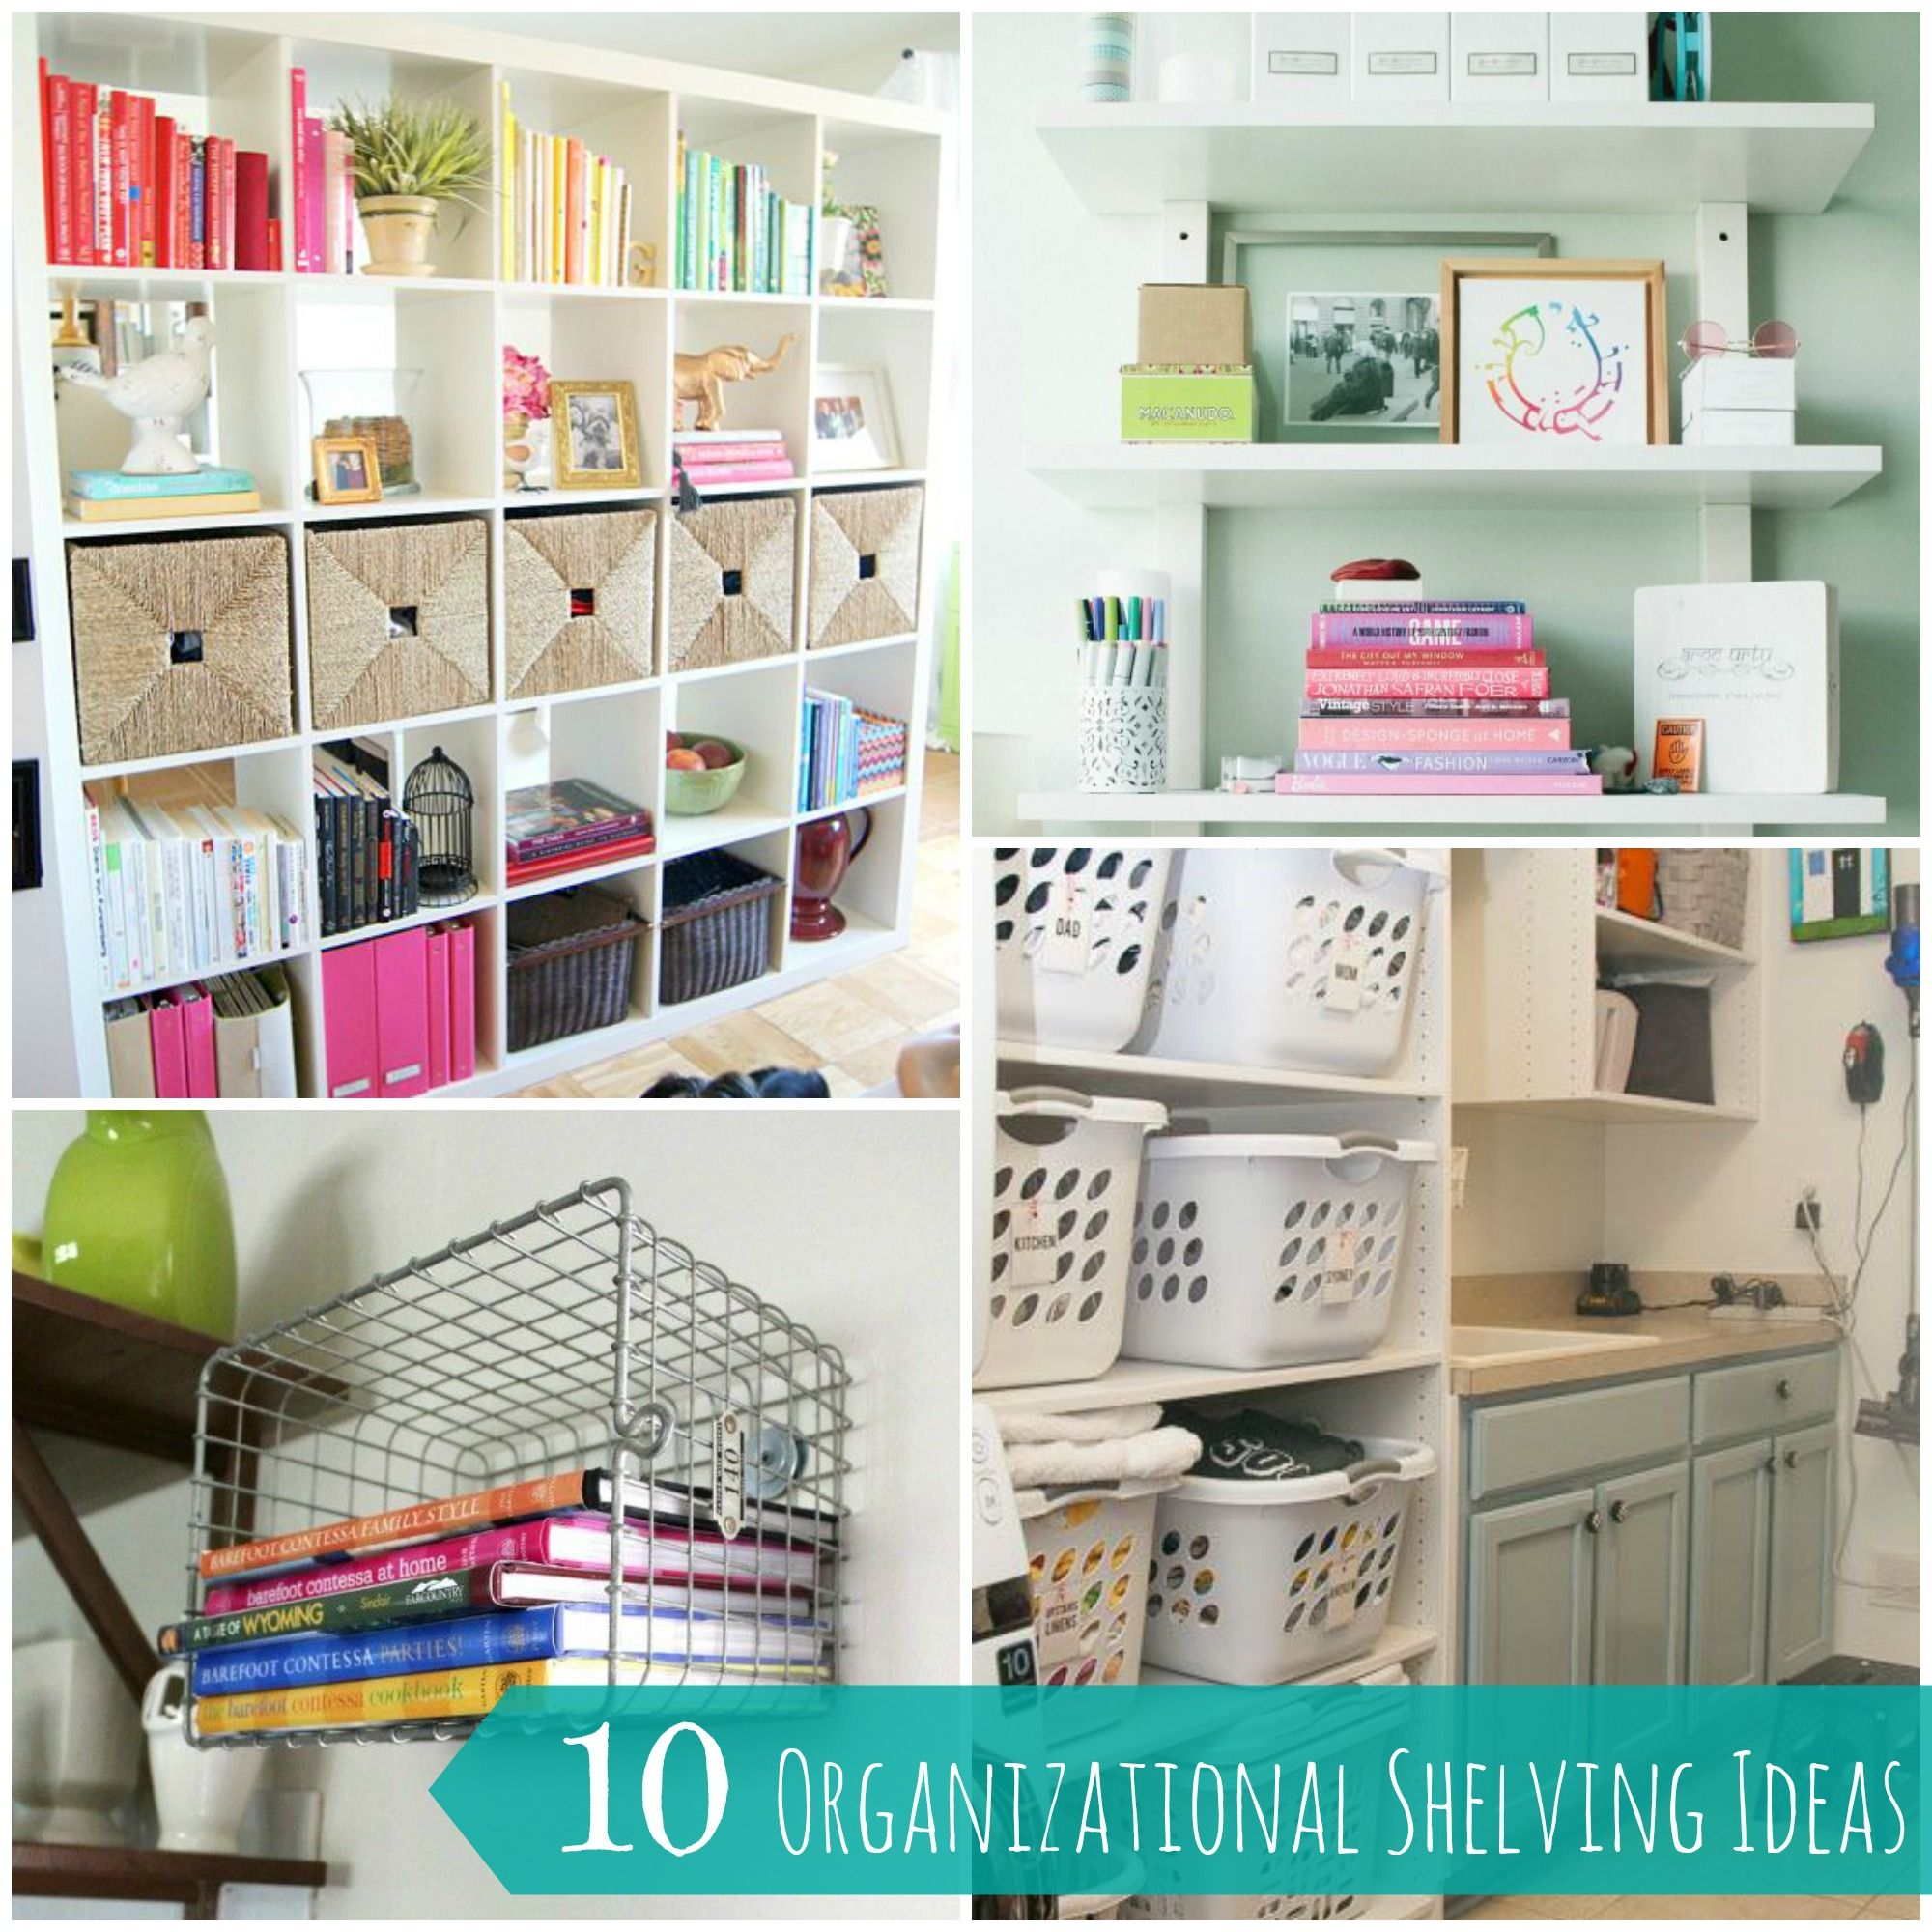 10 Easy and Creative Shelving Organization Ideas for your Home ...